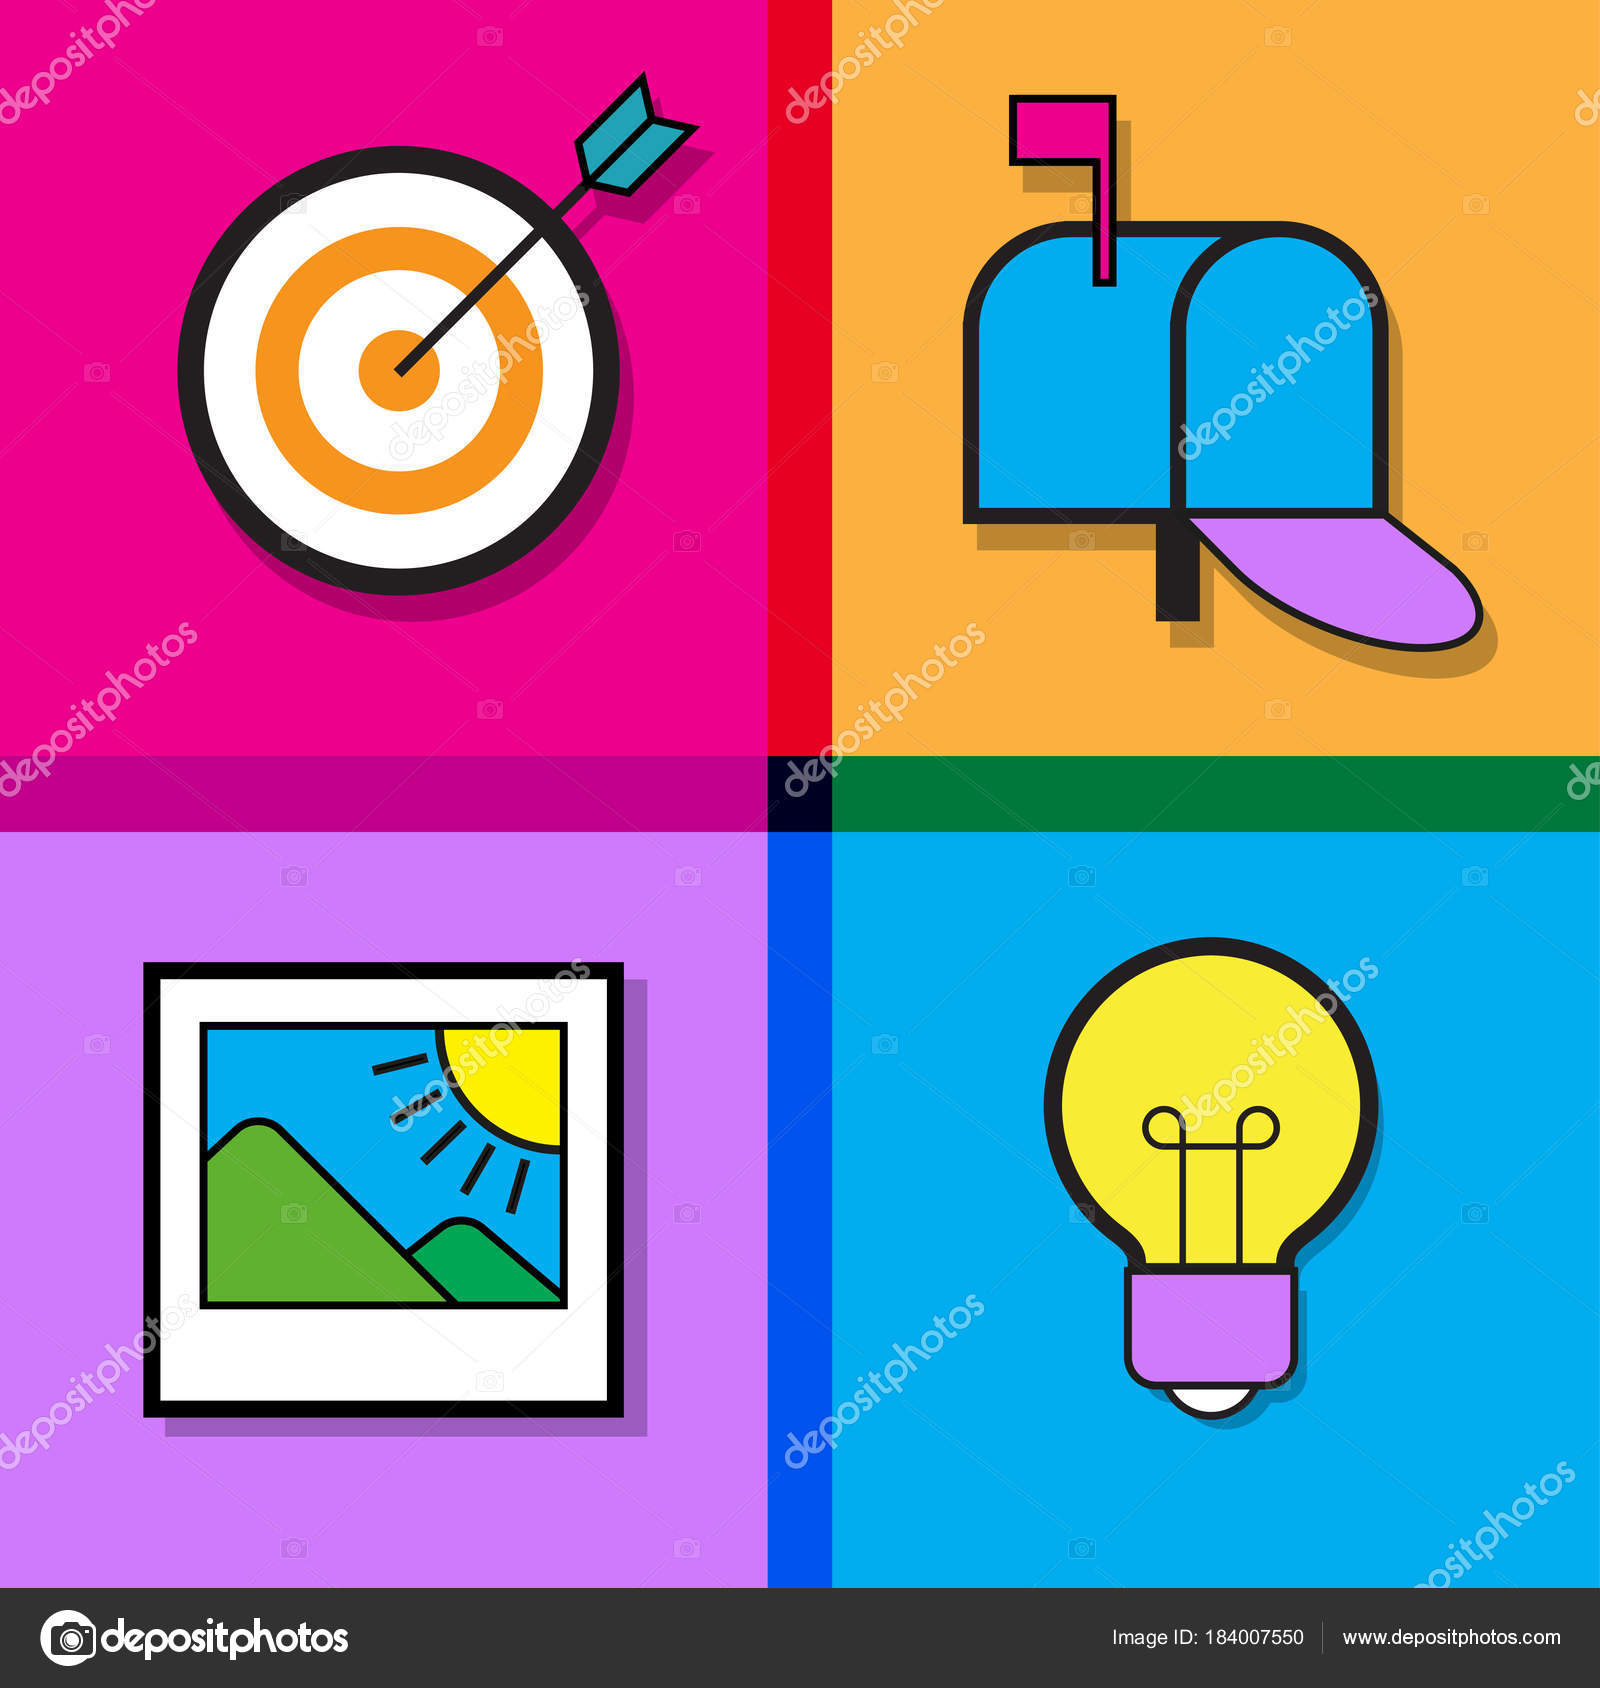 email advertising design infographic template icons set modern flat